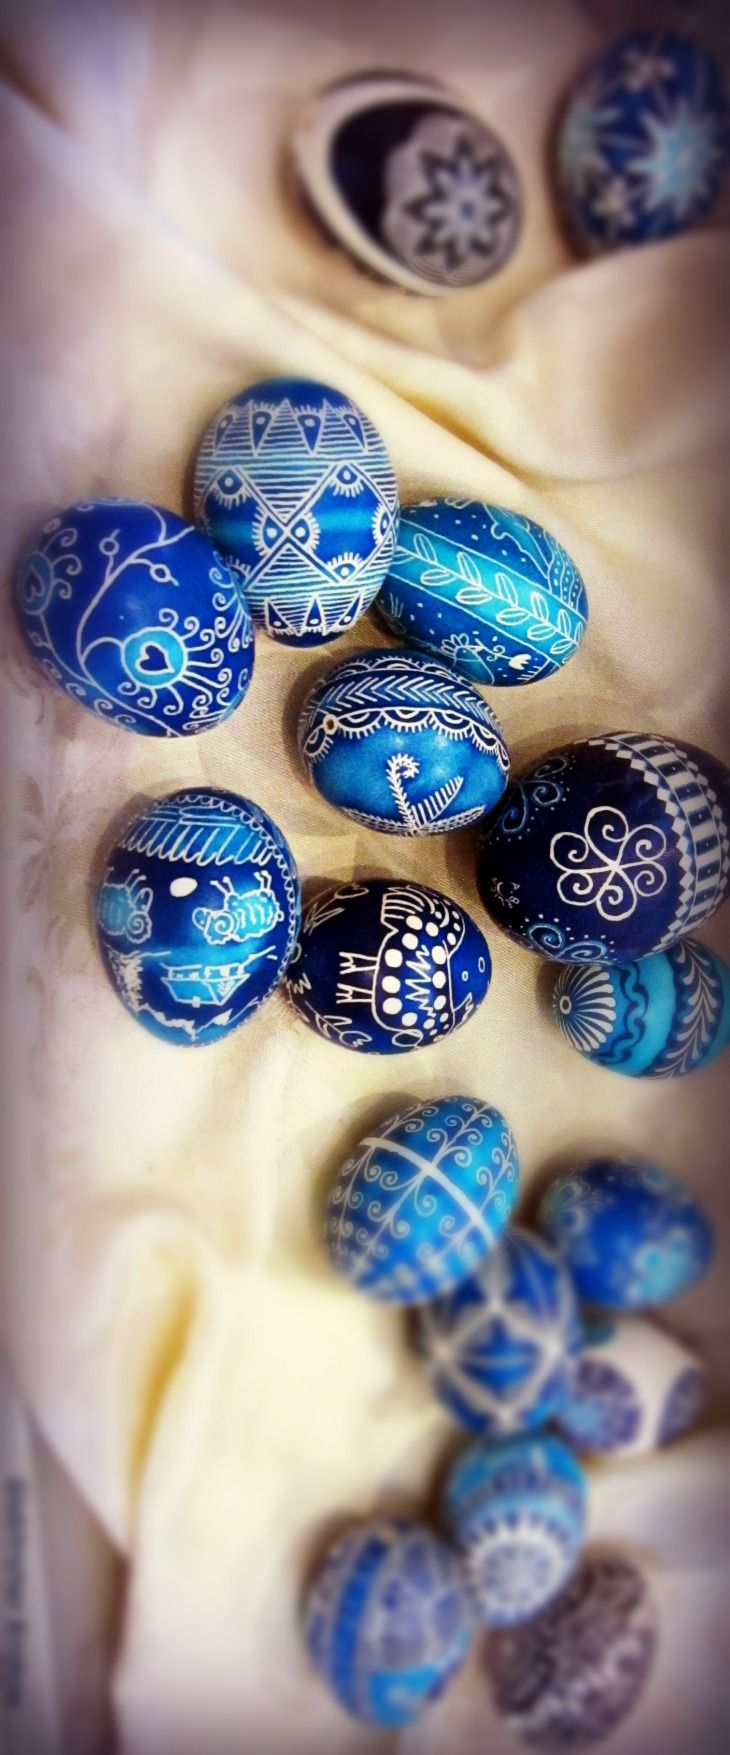 Polish Easter Eggs, Krakow, Poland